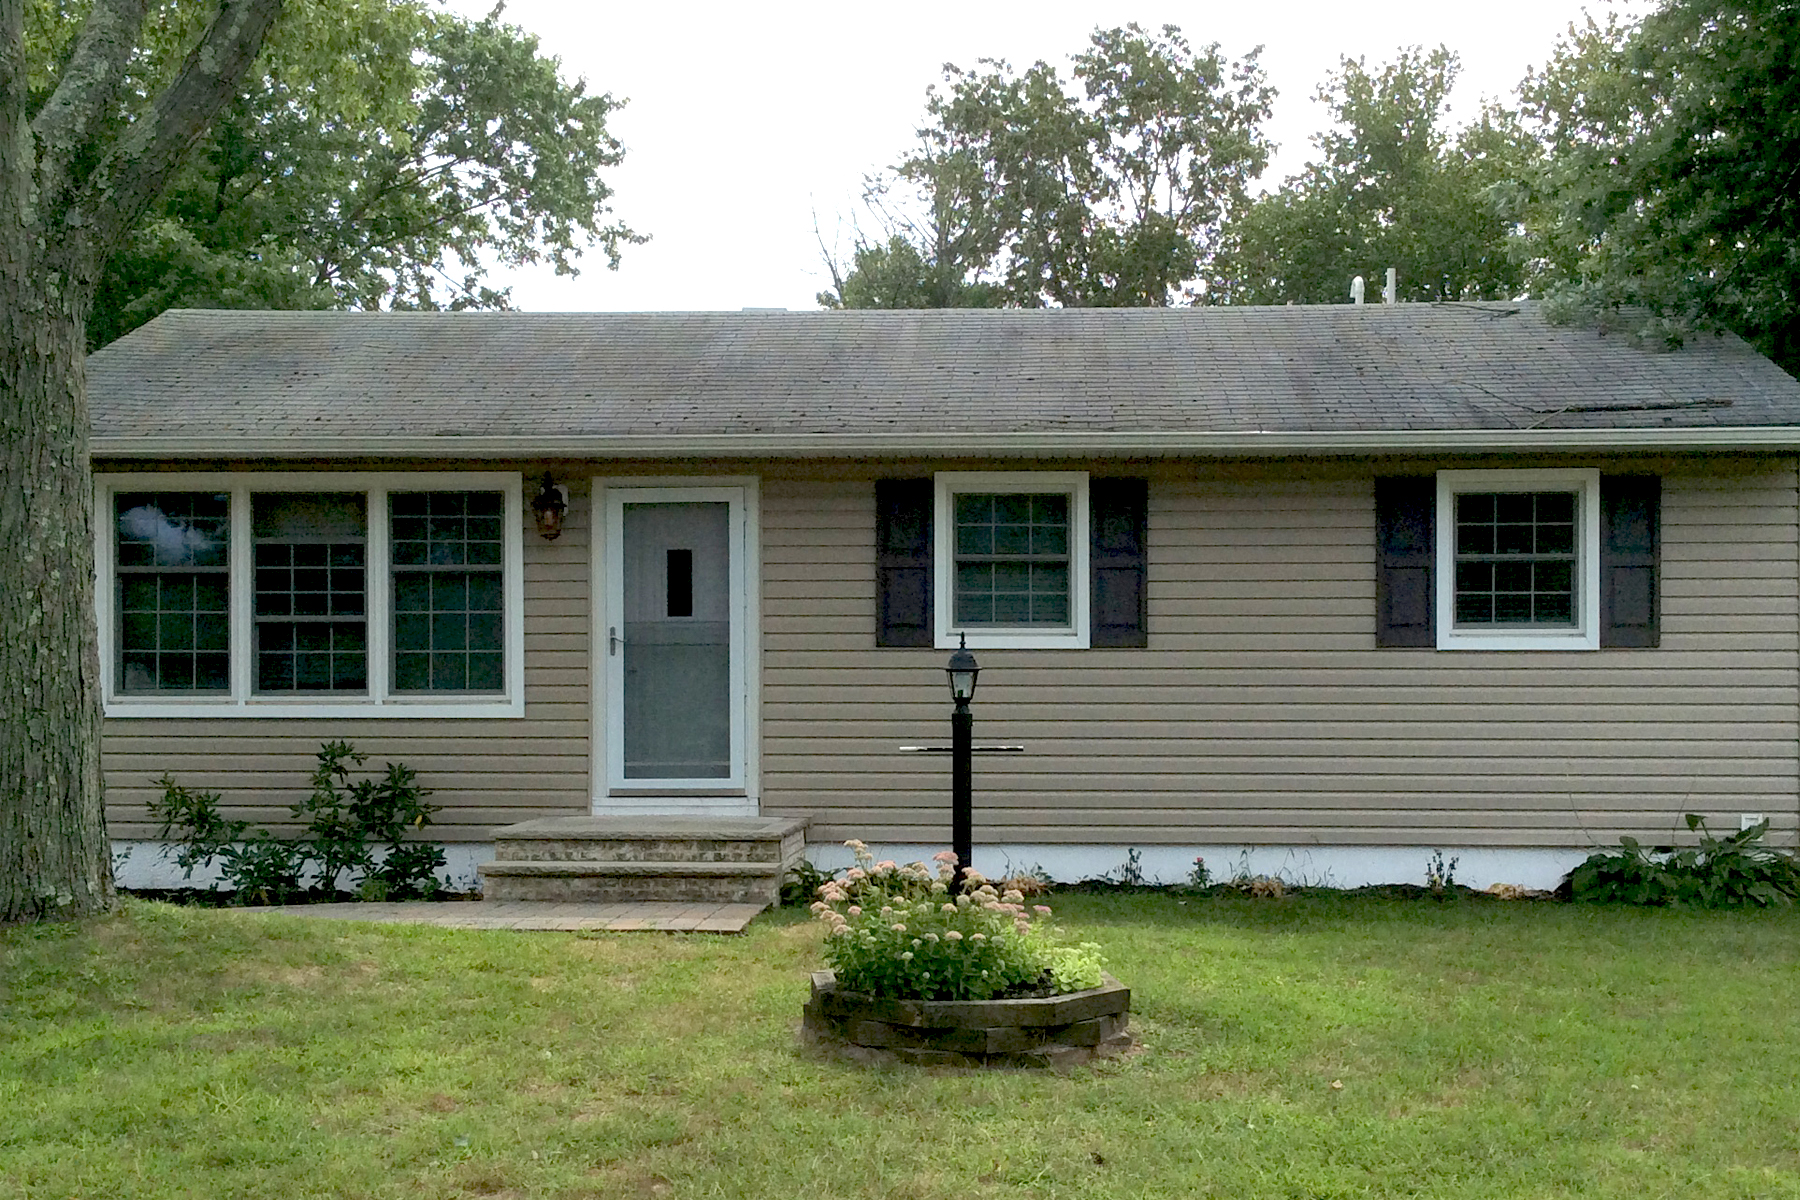 Single Family Home for Sale at Birchwood Park Lovely Ranch 228 Elmwood Court Brick, New Jersey, 08723 United States